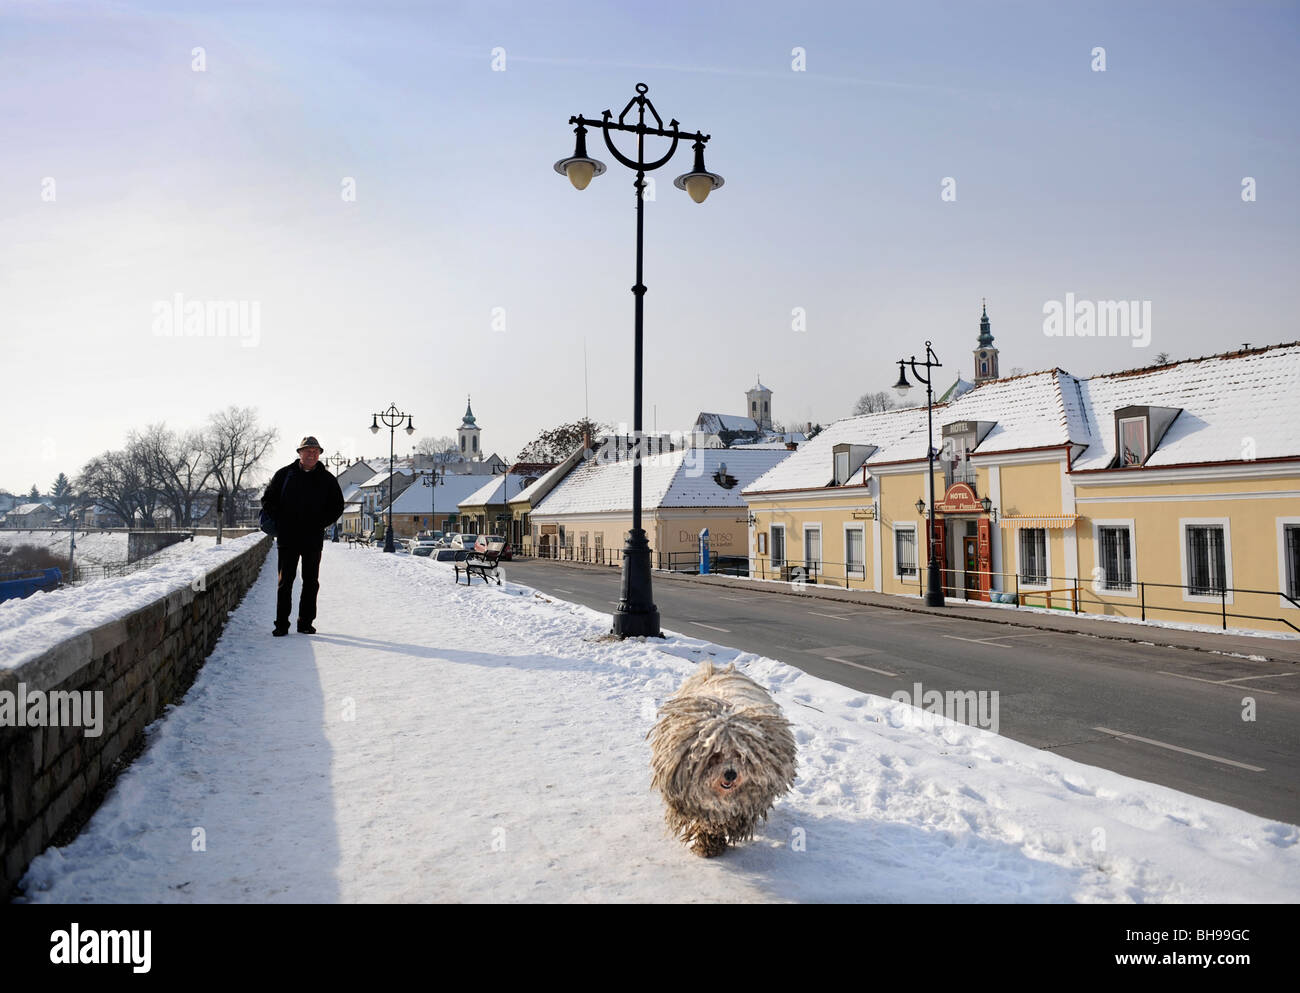 Winter scene in Szentendre Hungary with a man walking a traditional Hungarian Puli Sheepdog Stock Photo